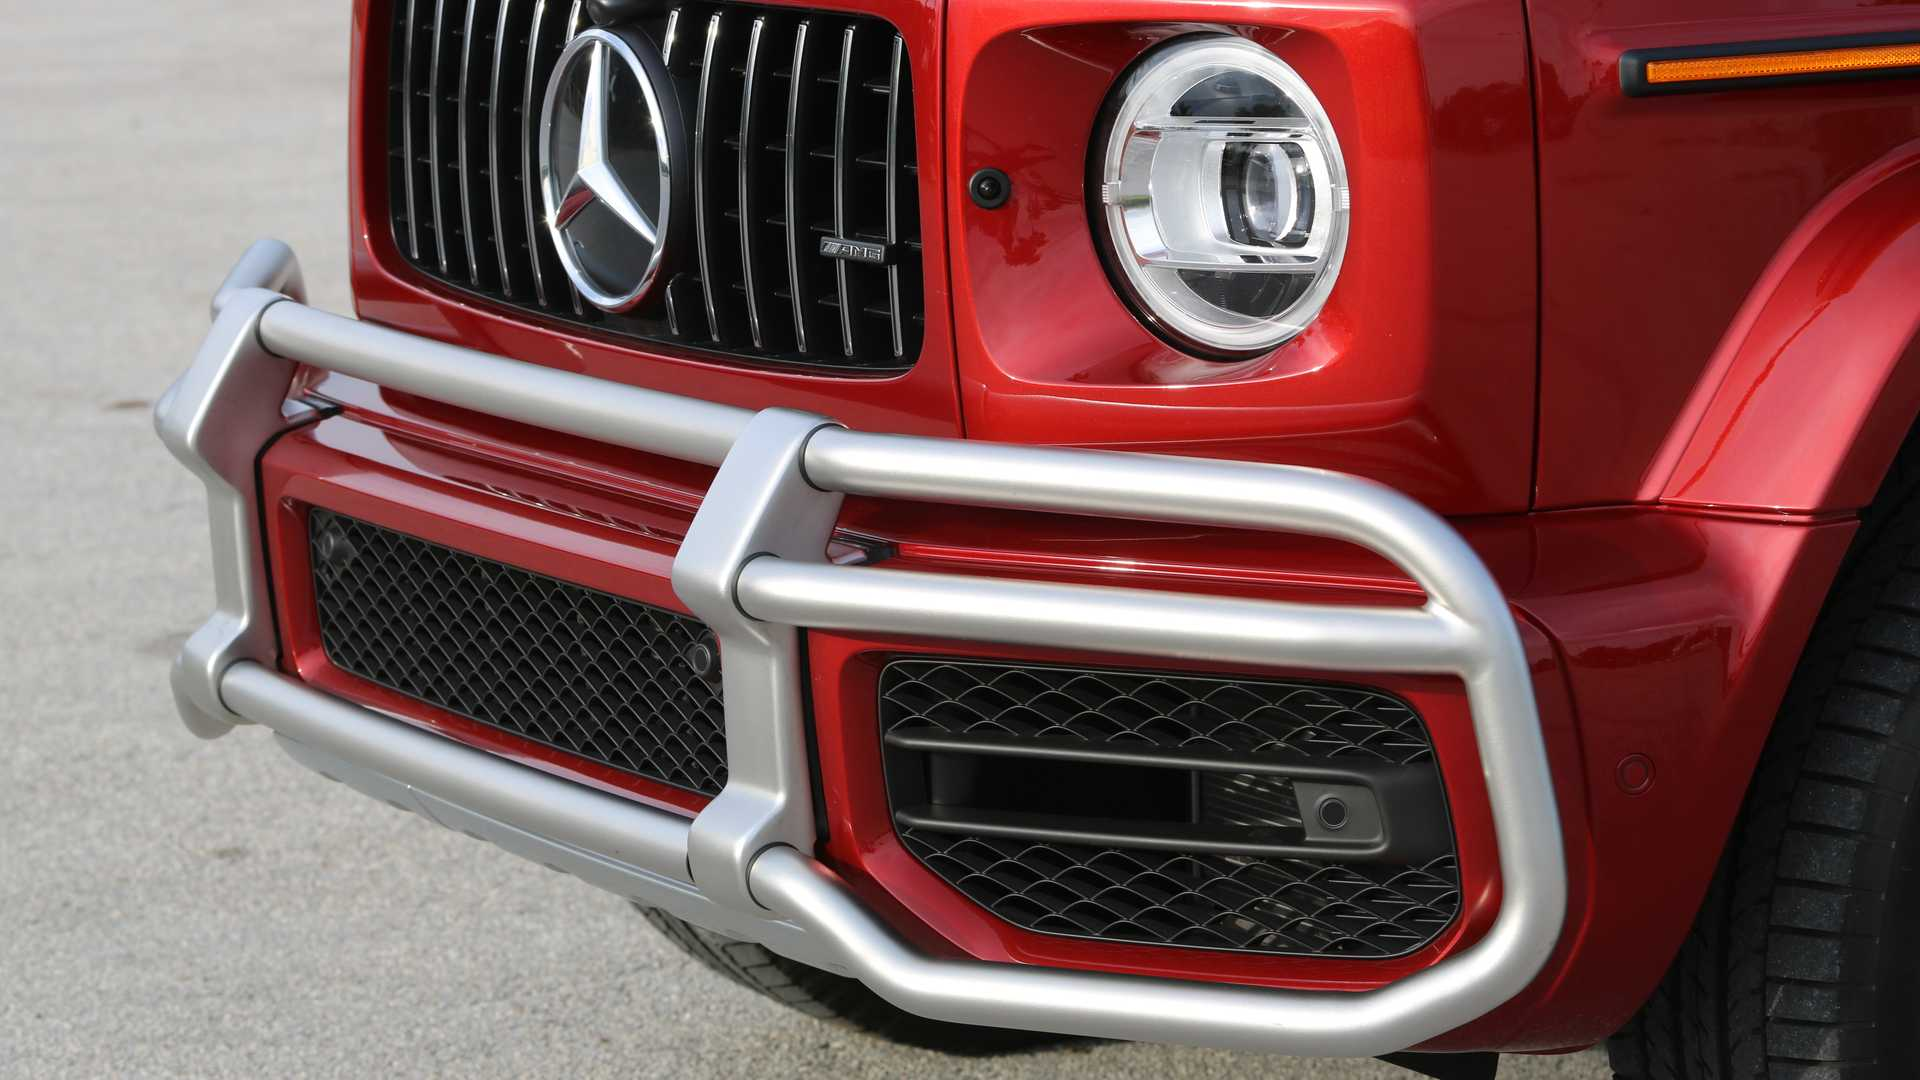 2019 Mercedes-AMG G 63: Review